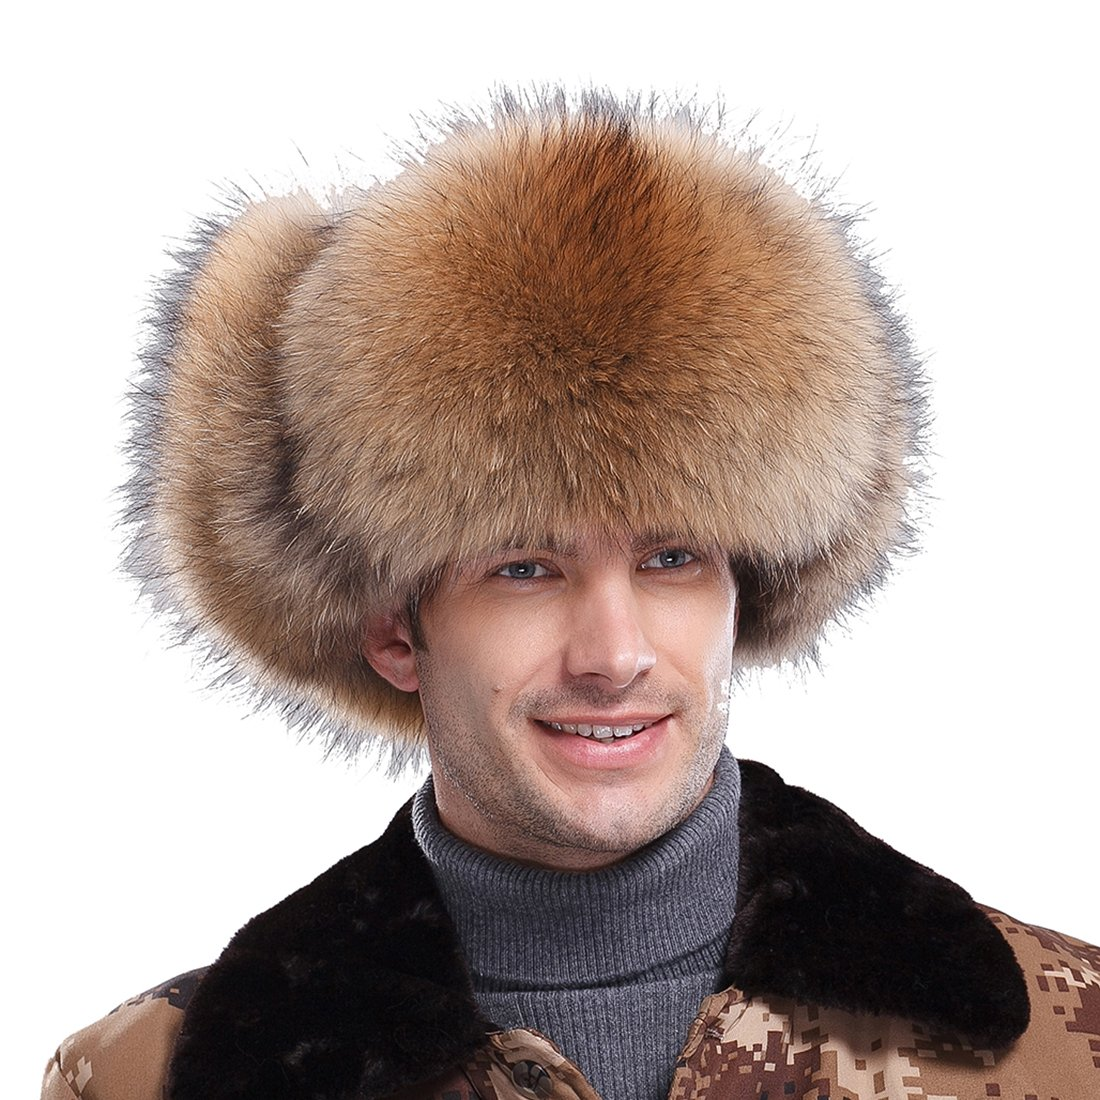 URSFUR Men's Raccoon Fur & Leather Trapper Hats Natural Color .Ltd. SD-F1357-2-1